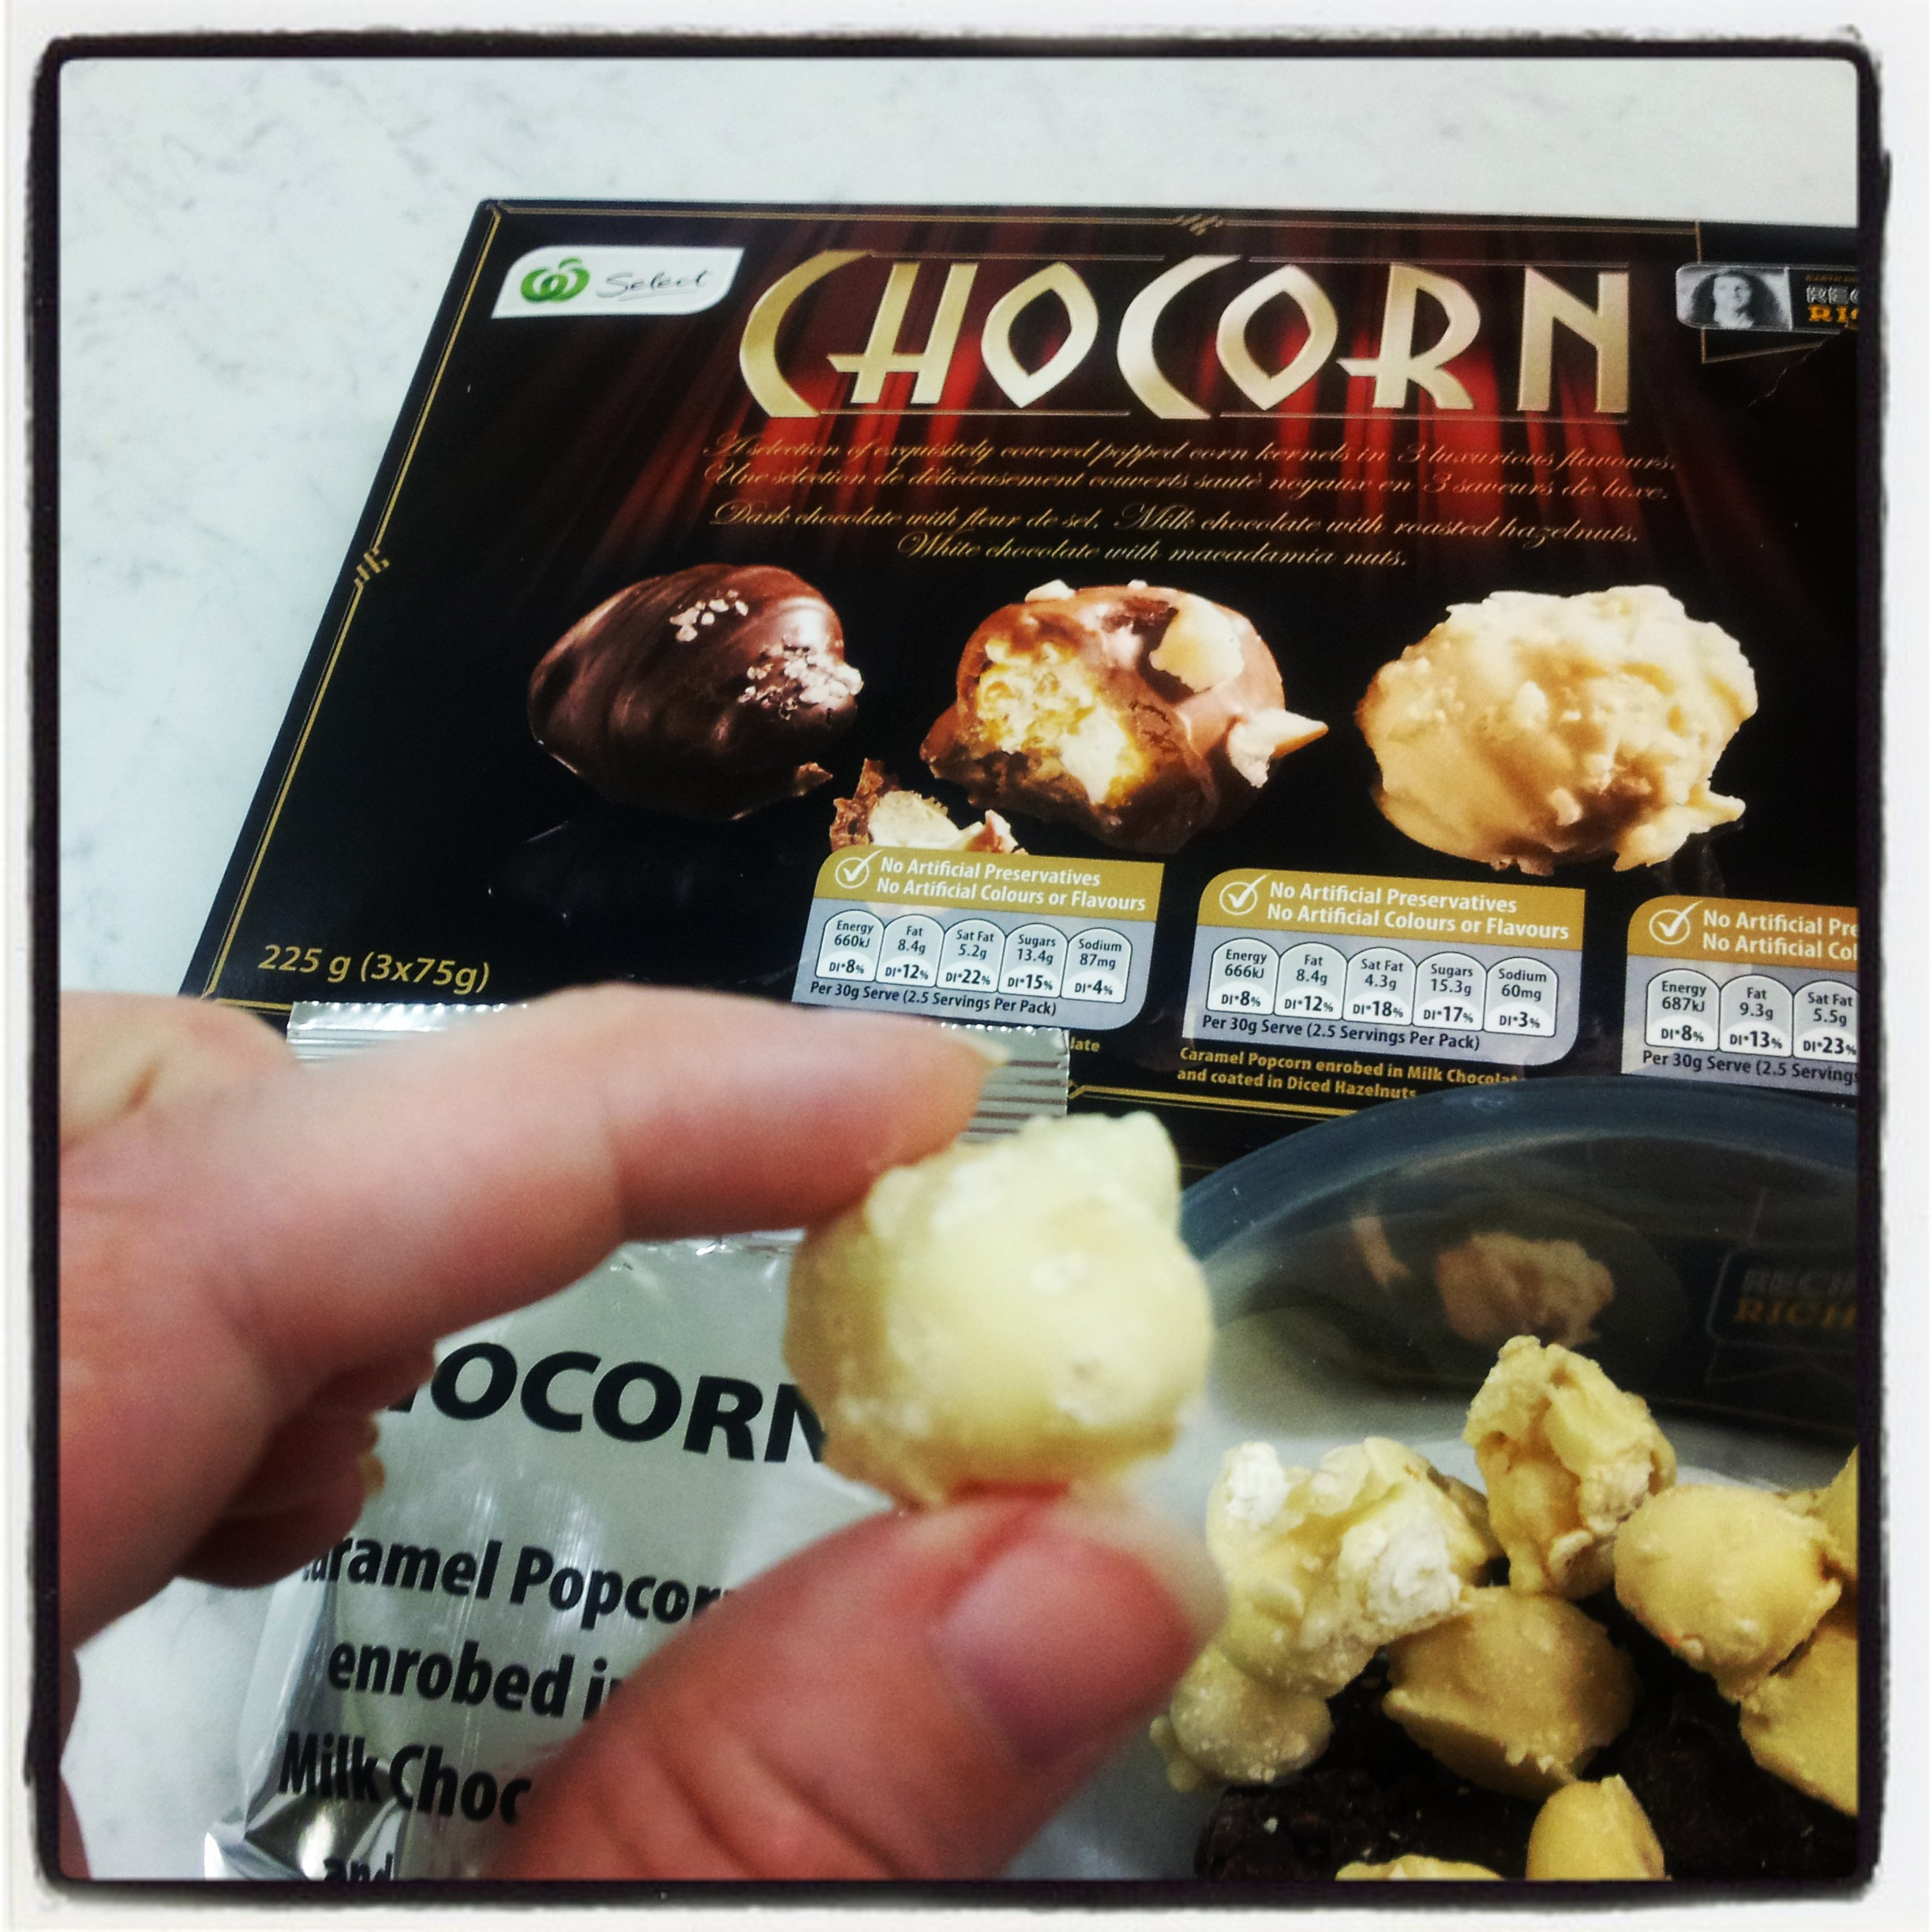 From Ideas to Market Chocorn is a Recipe to Riches